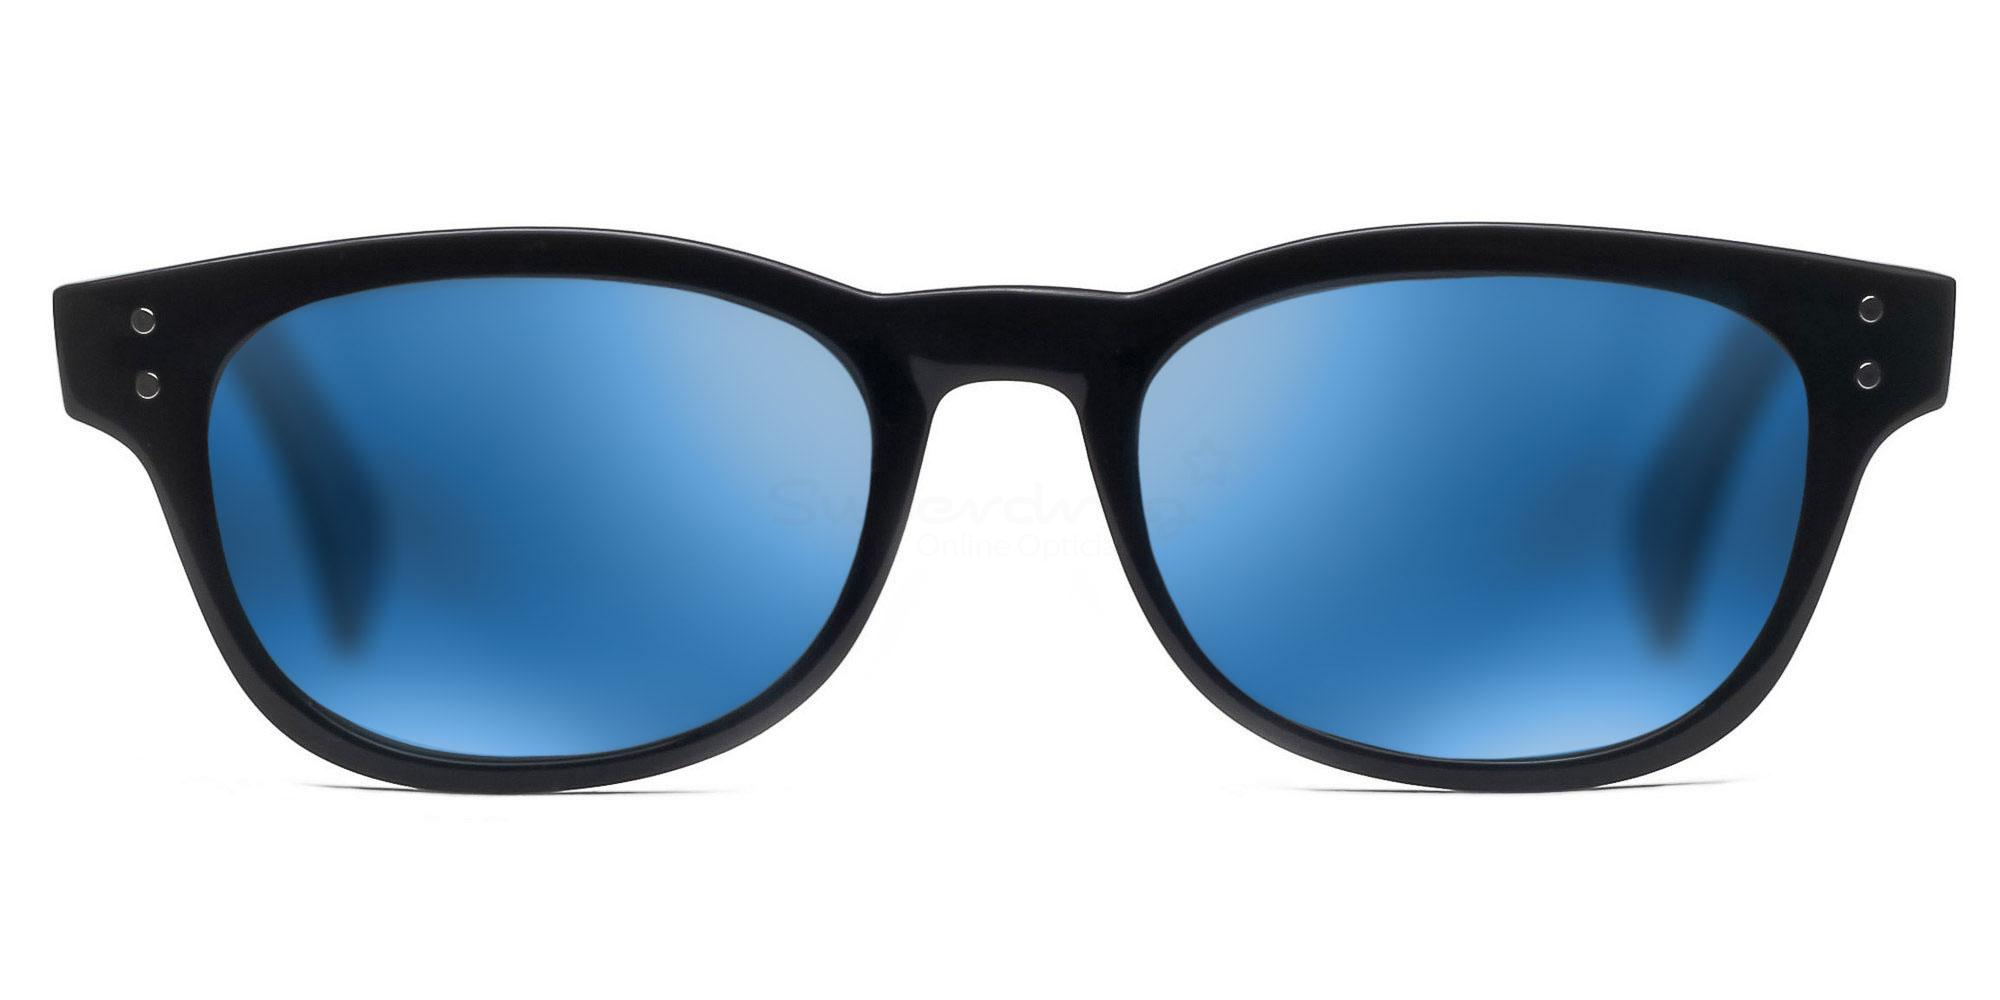 C01 Polarized Grey with Blue Mirror P2249 Shiny Black (Mirrored Polarized) Sunglasses, Neon